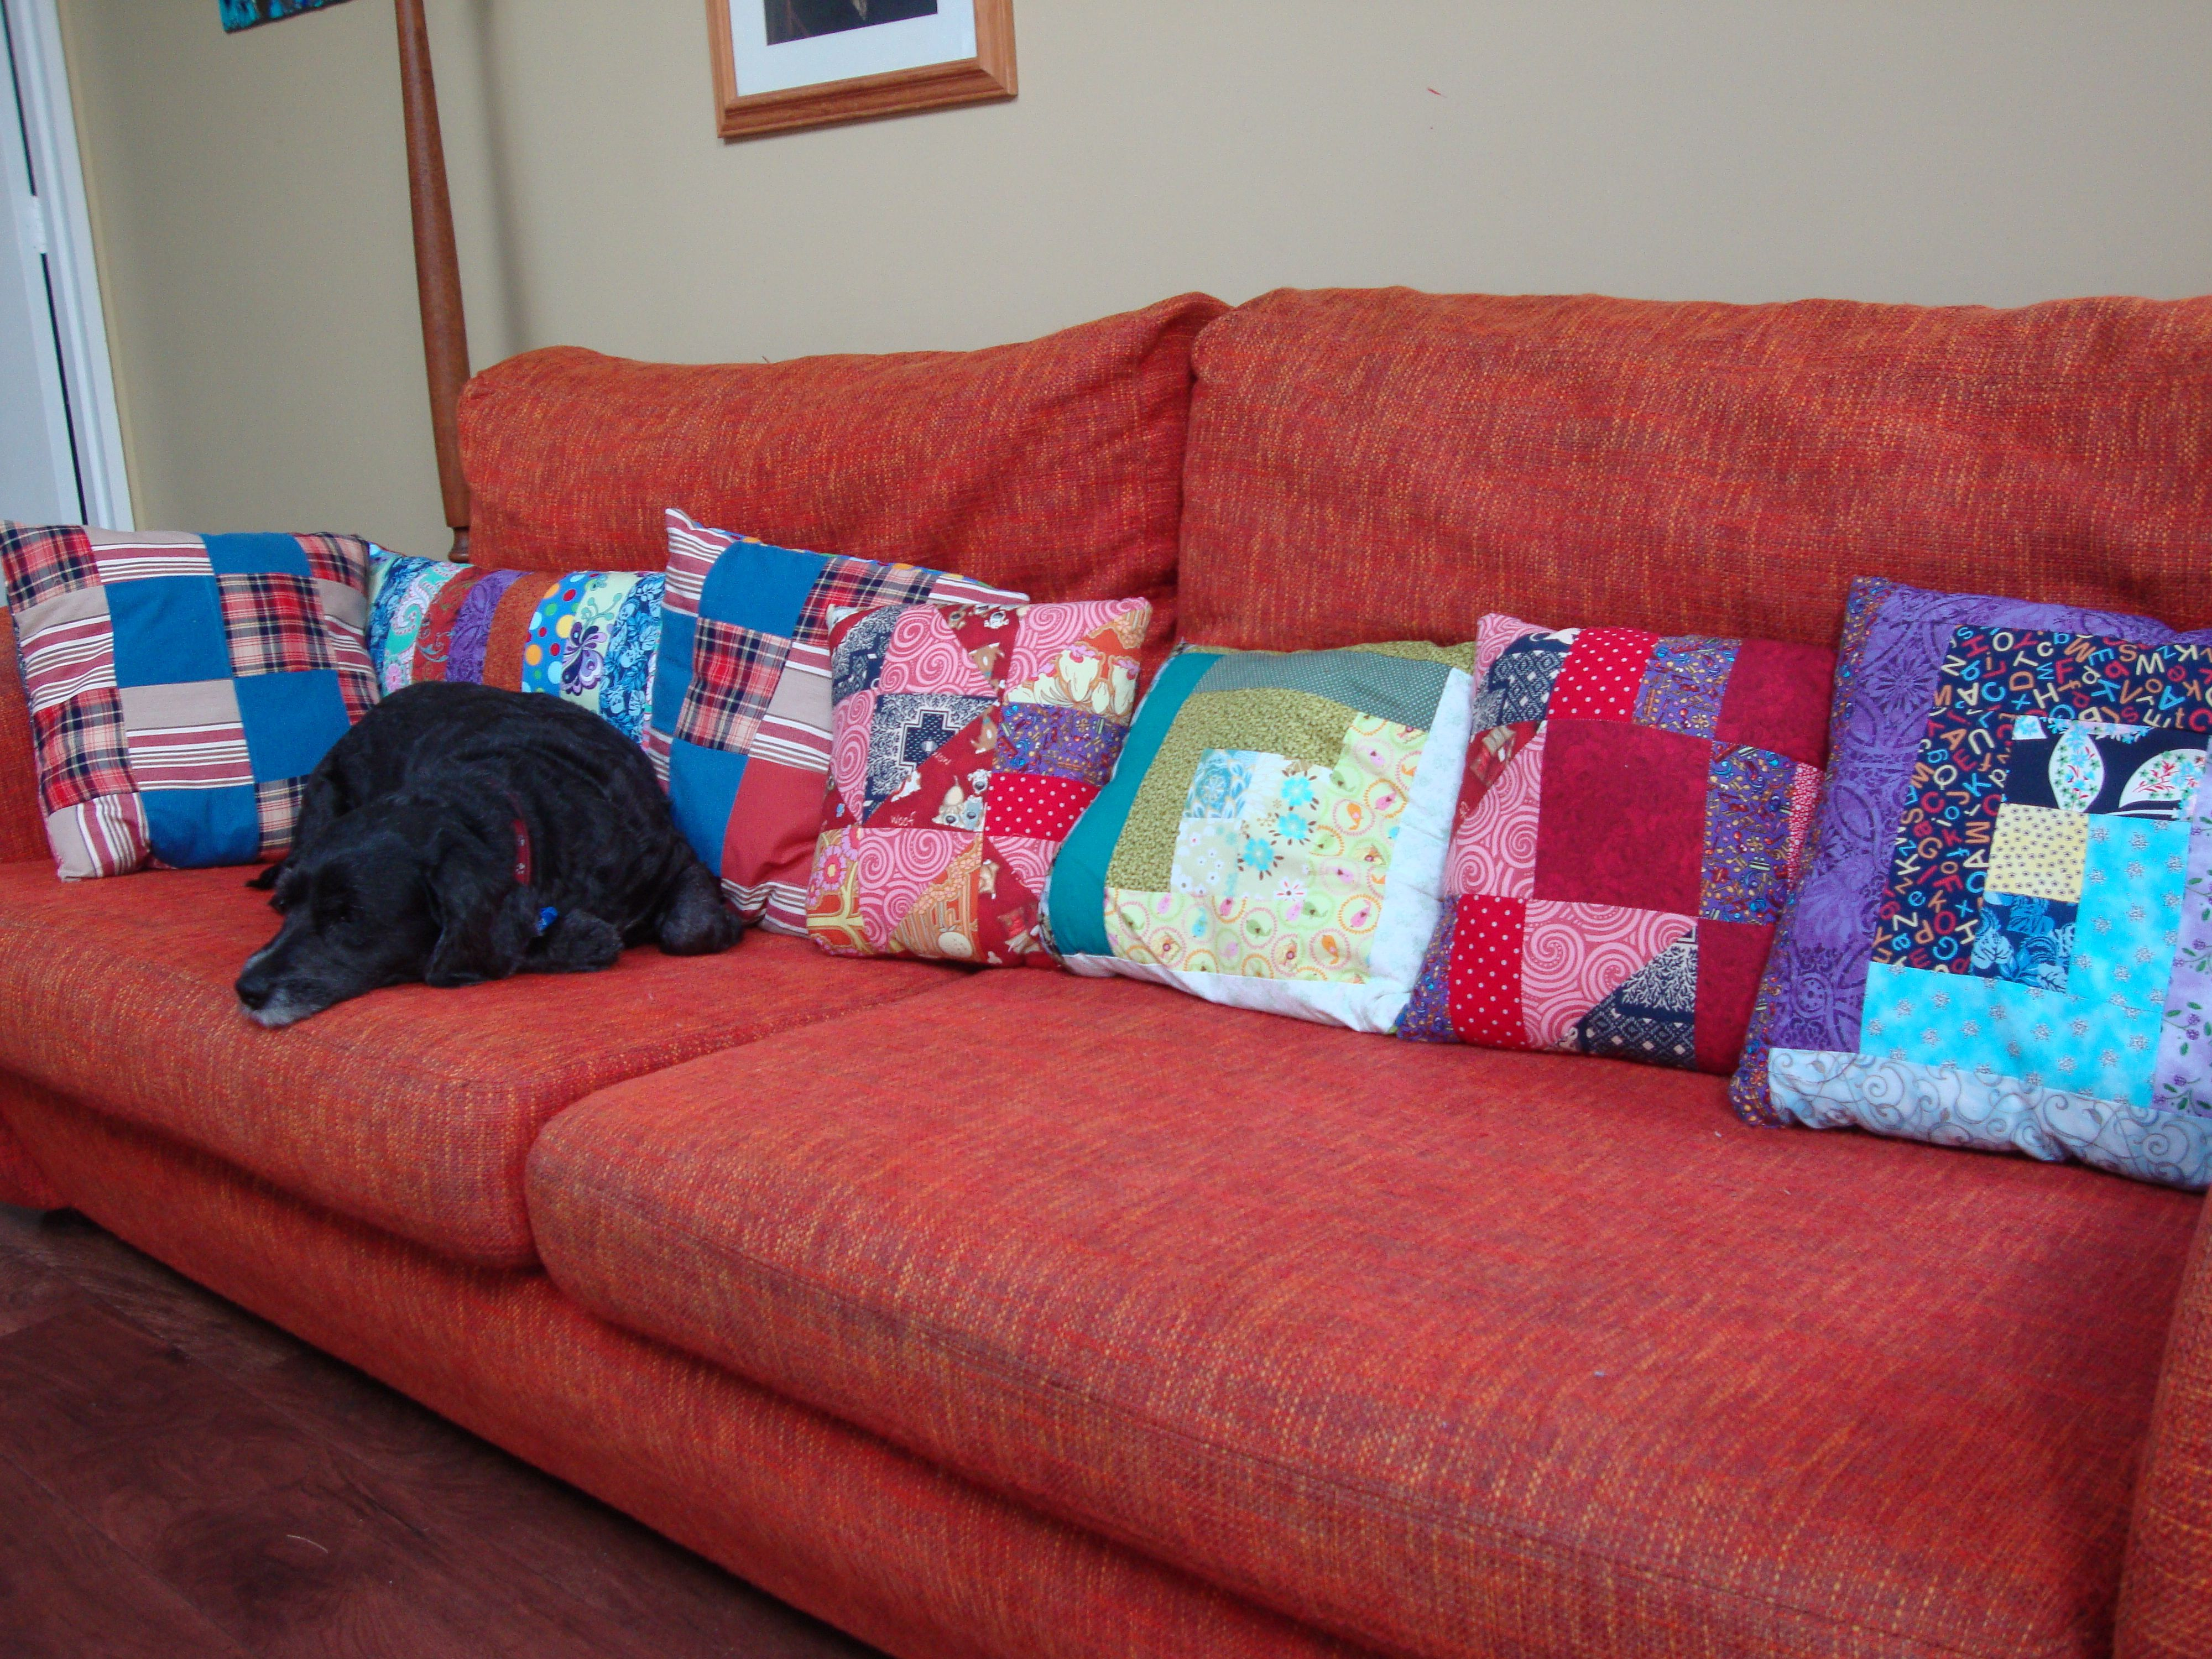 patchwork cushion covers upcycled from fabric scraps